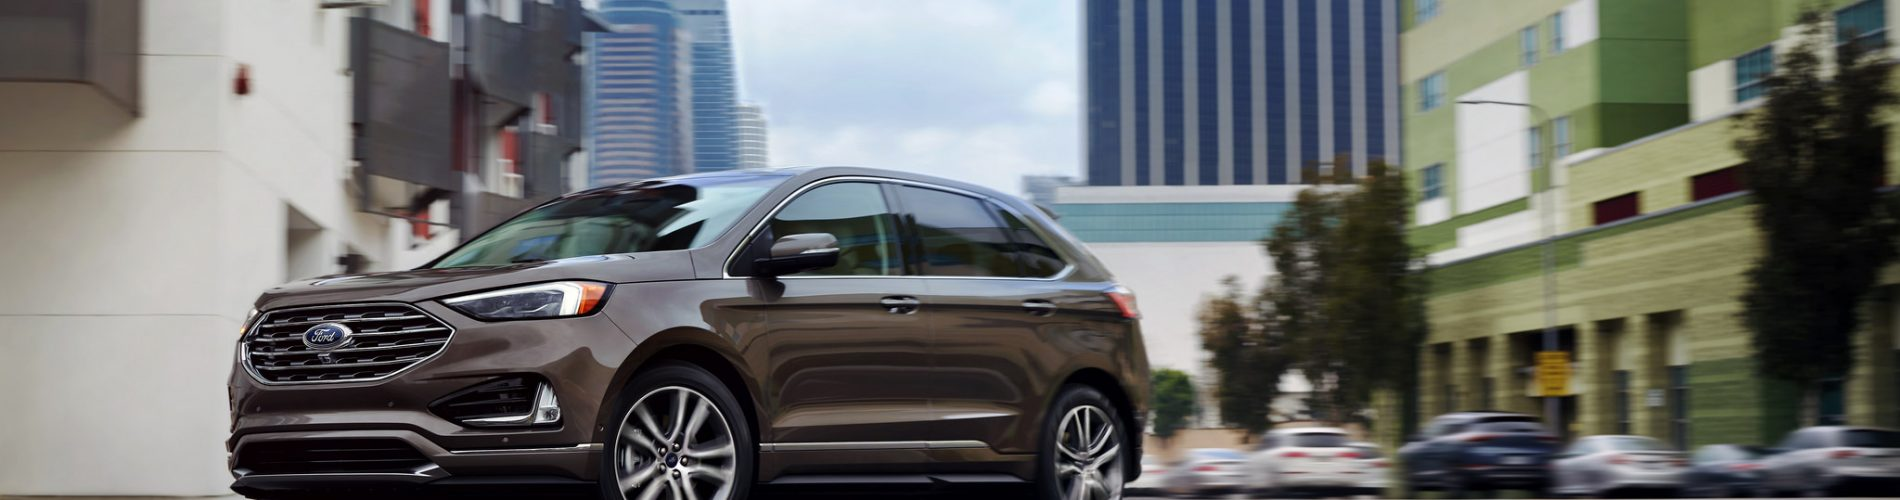 New Year's goals - 2019 Ford Edge